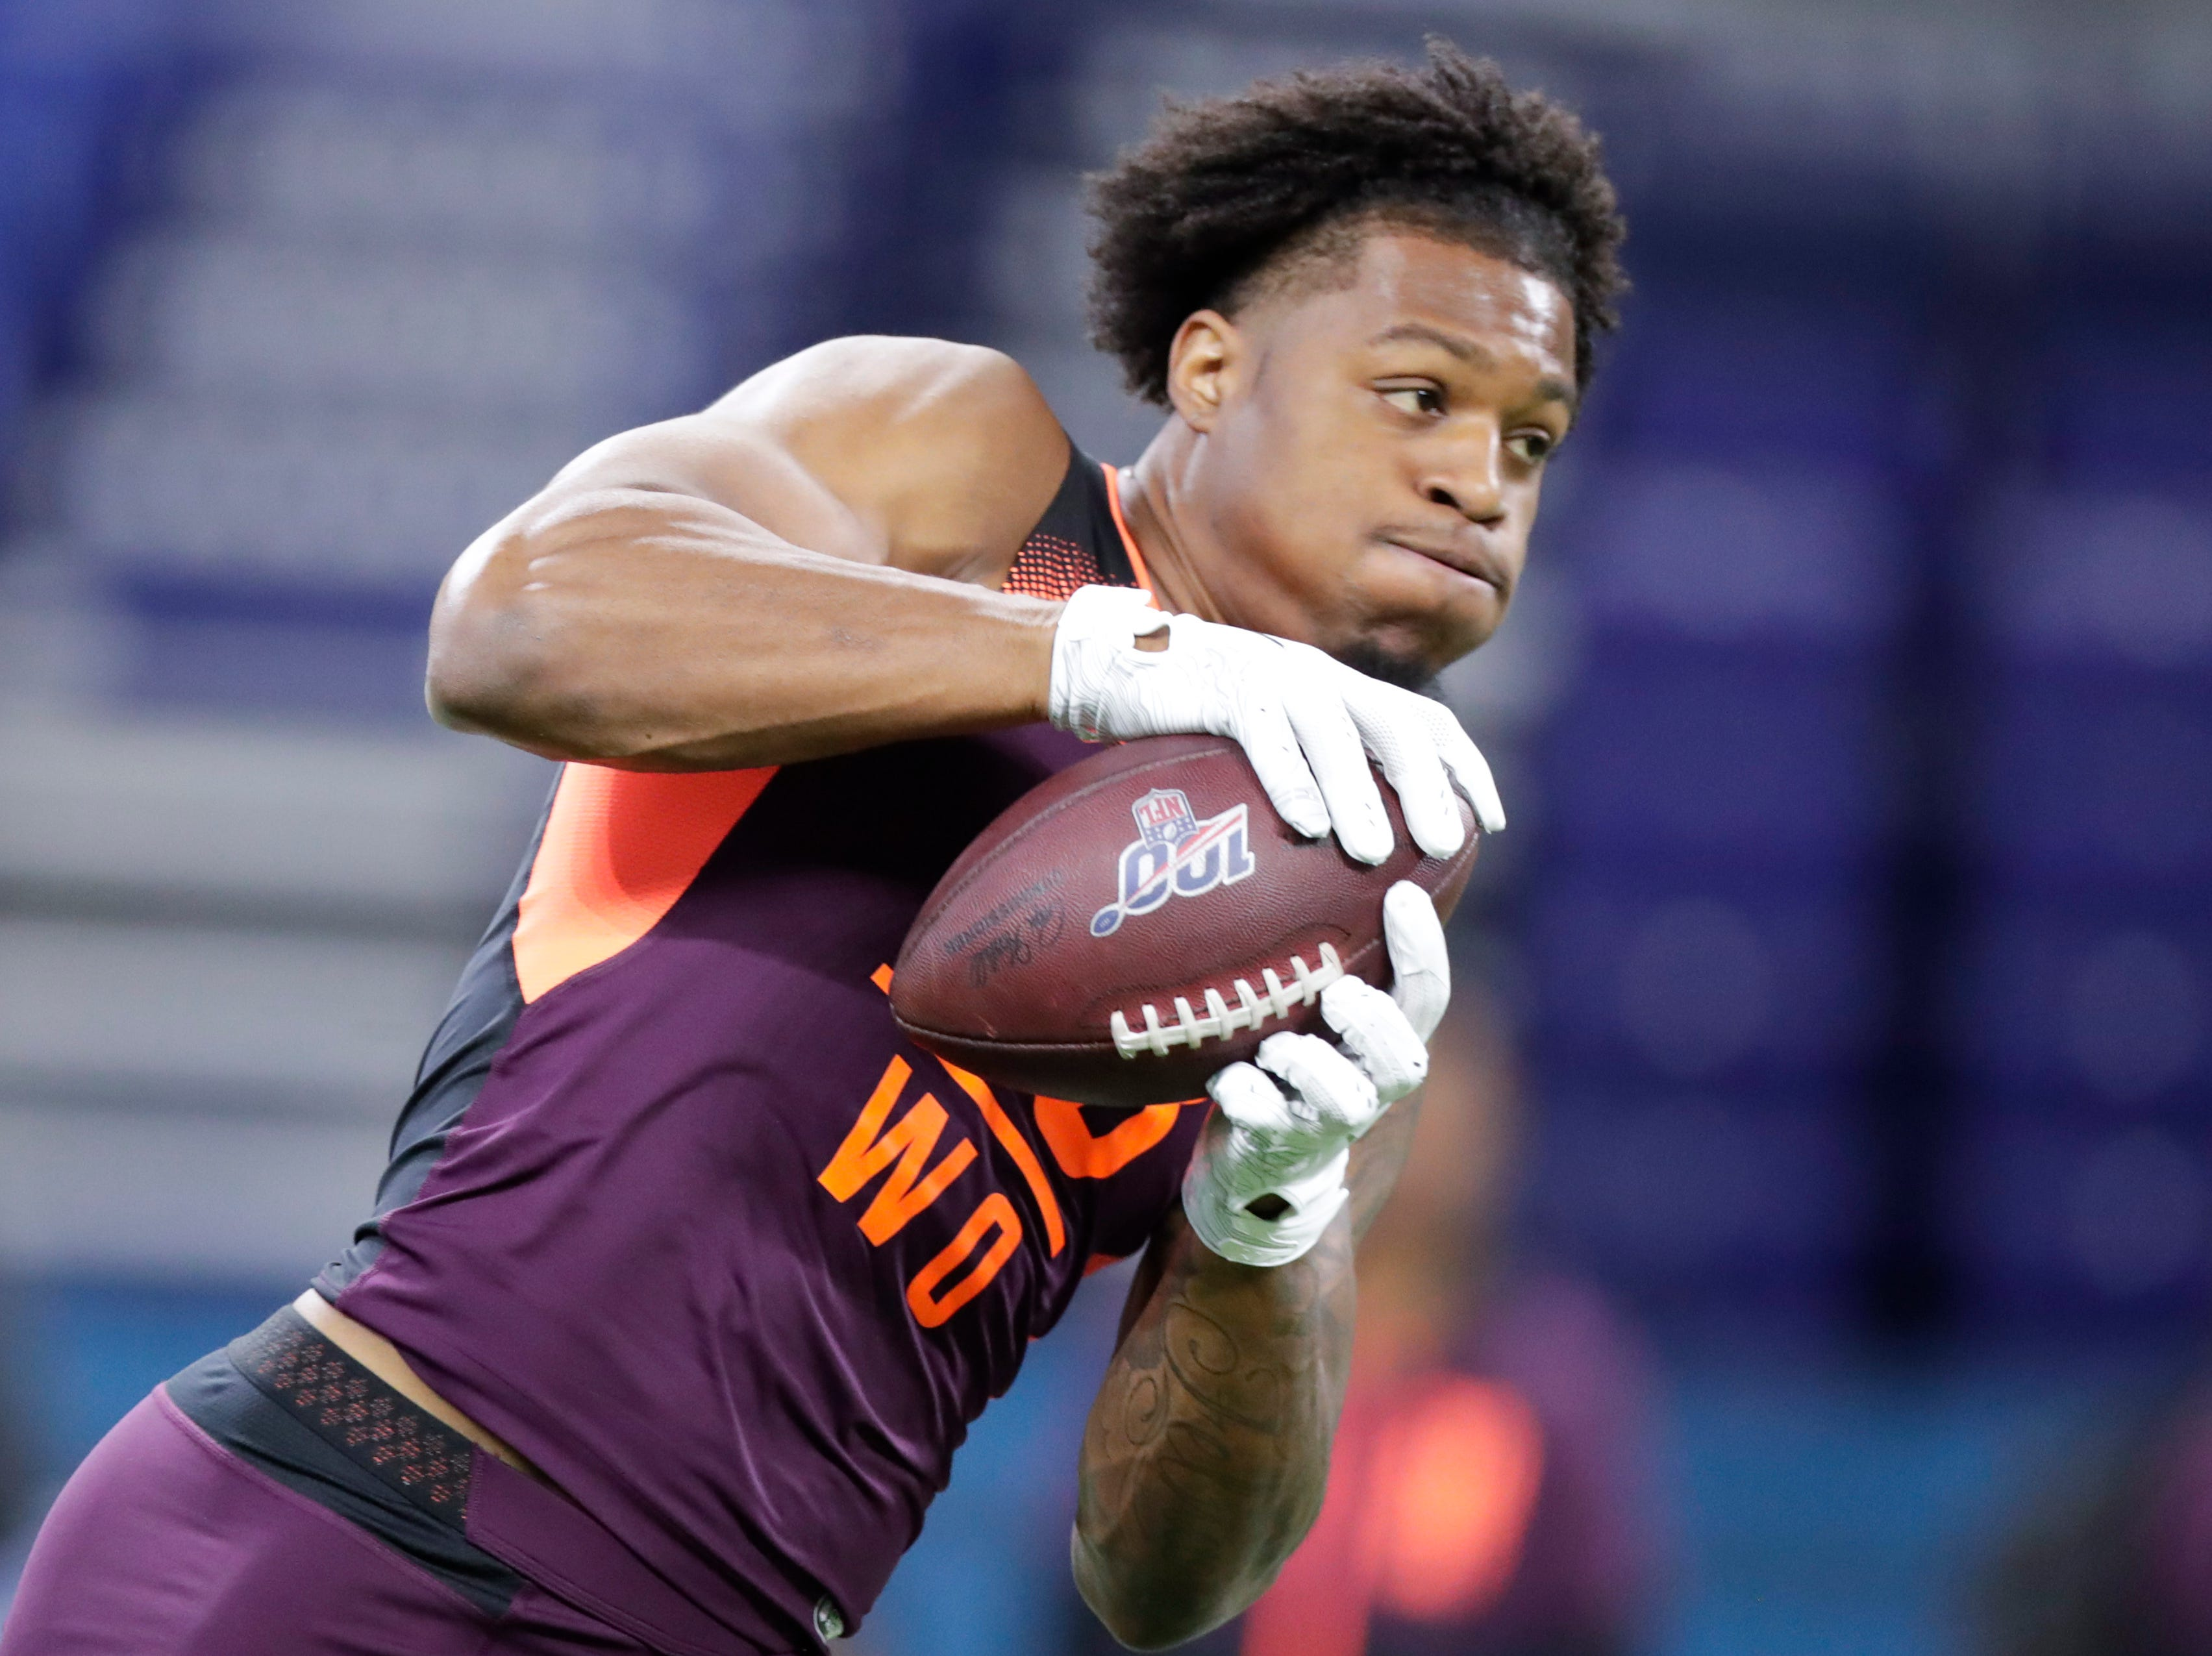 Arizona State wide receiver N'Keal Harry runs a drill at the NFL football scouting combine in Indianapolis, Saturday, March 2, 2019. (AP Photo/Michael Conroy)